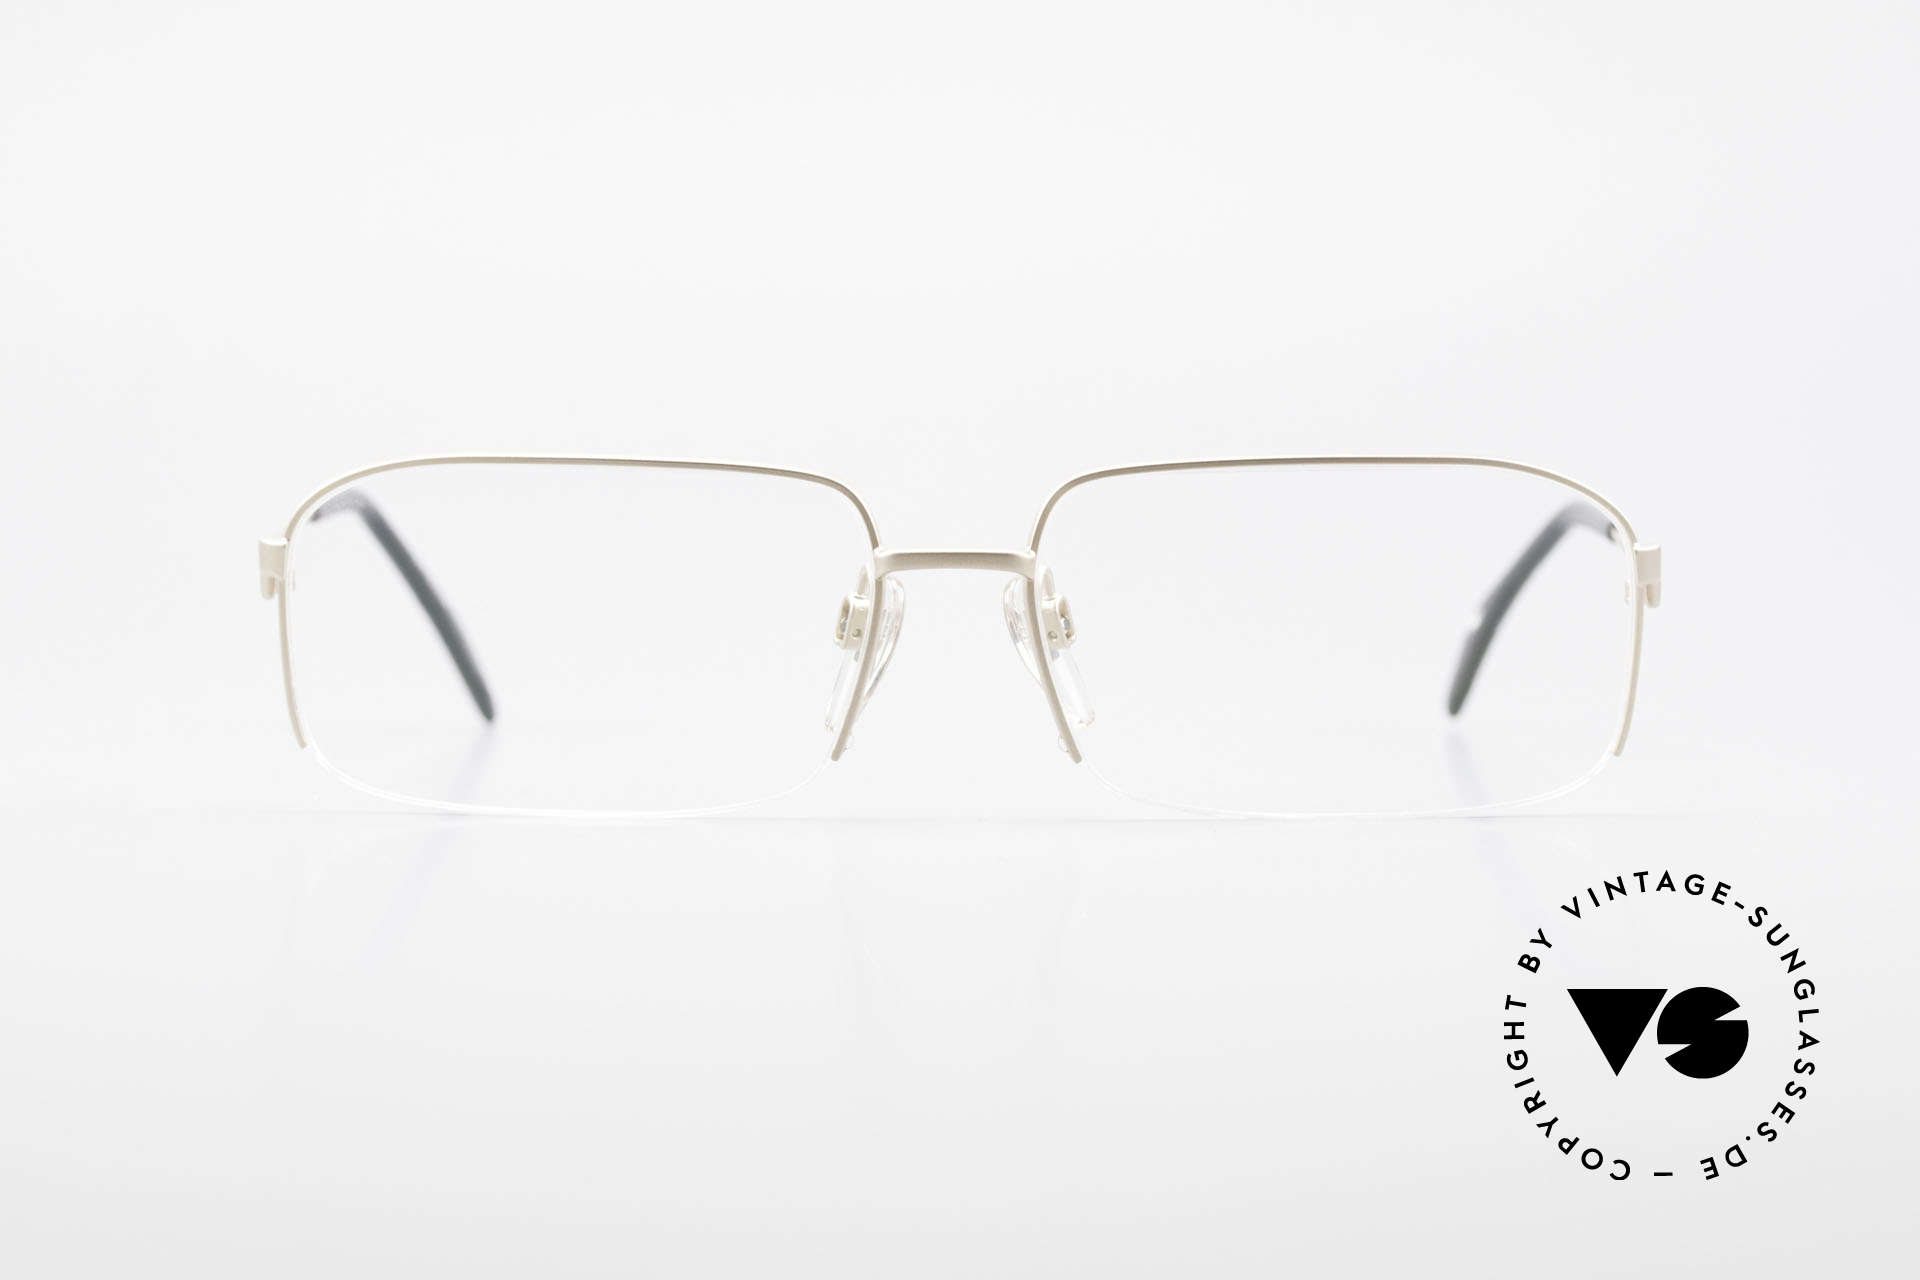 Wolfgang Proksch WP0102 Titanium Frame Made in Japan, WP: one of the most influential eyewear designers, Made for Men